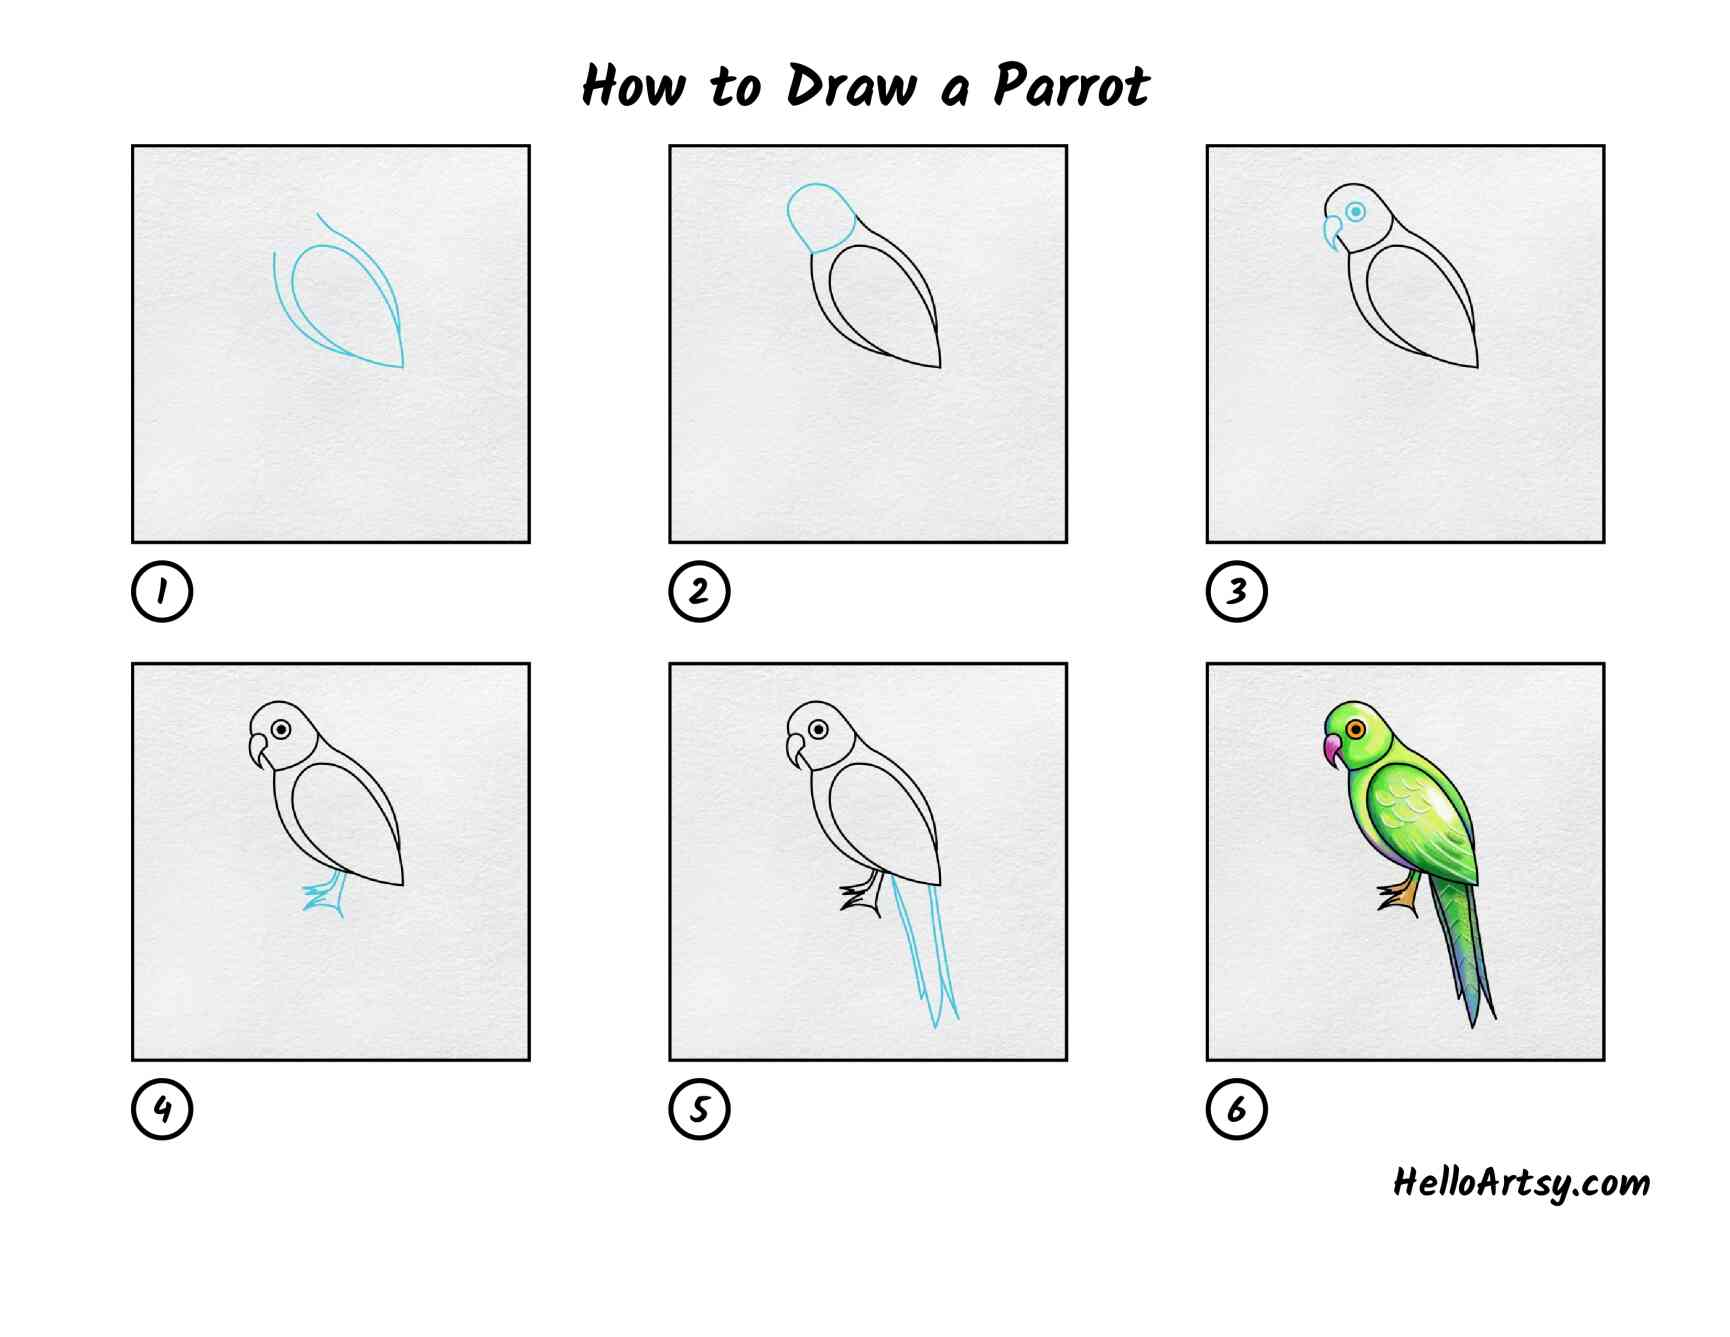 How To Draw A Parrot: All Steps